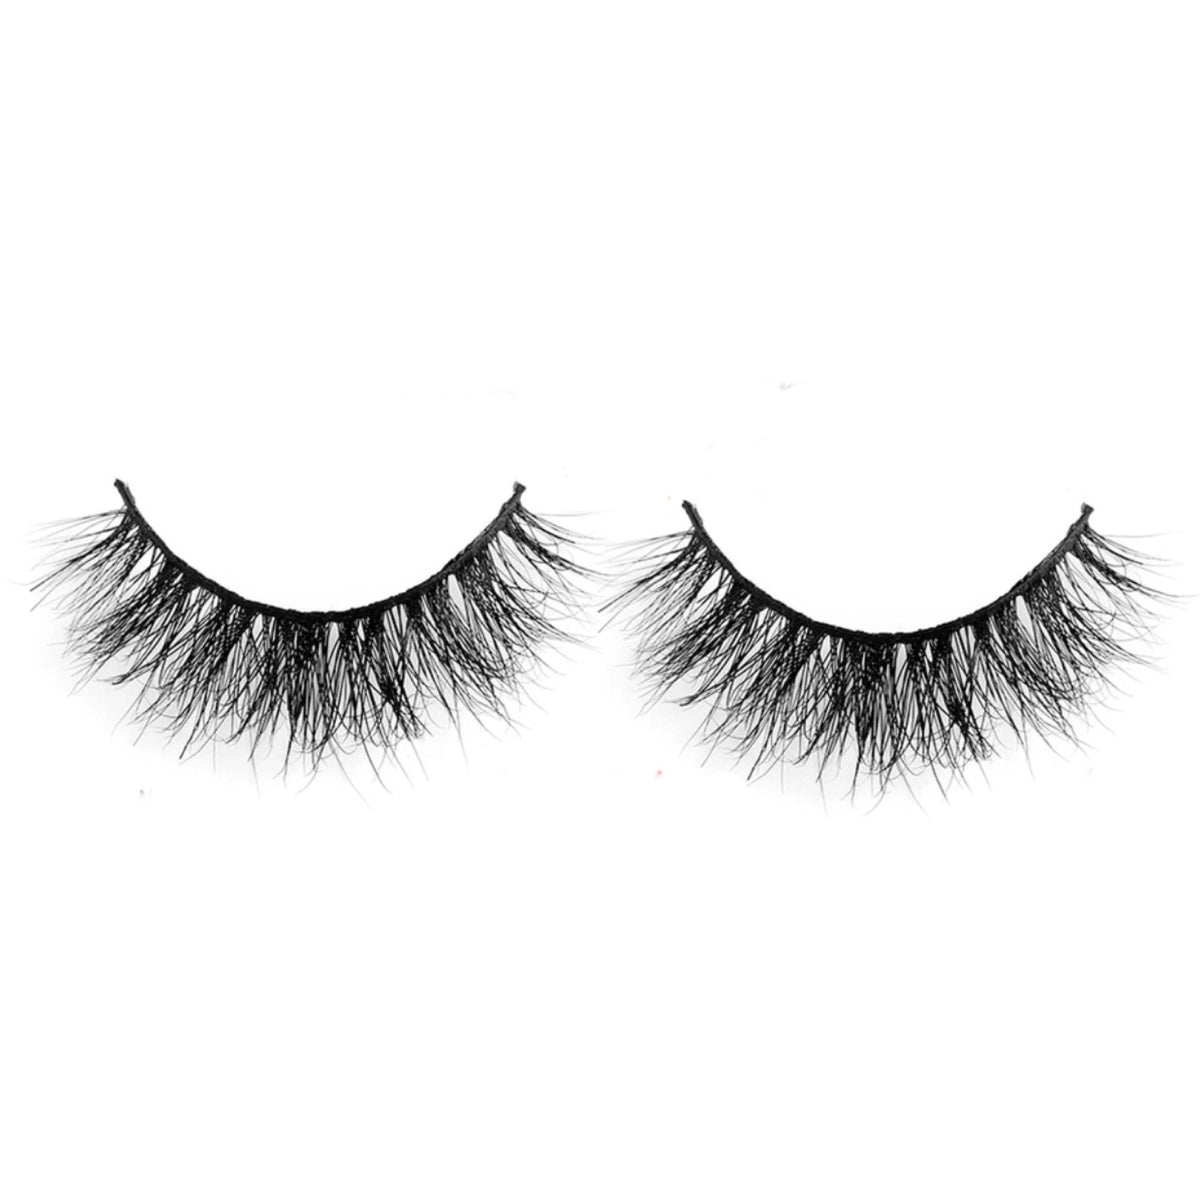 Venus 3D Mink Lashes Handmade Comes With Free Applicator - lexinoelbeauty.com